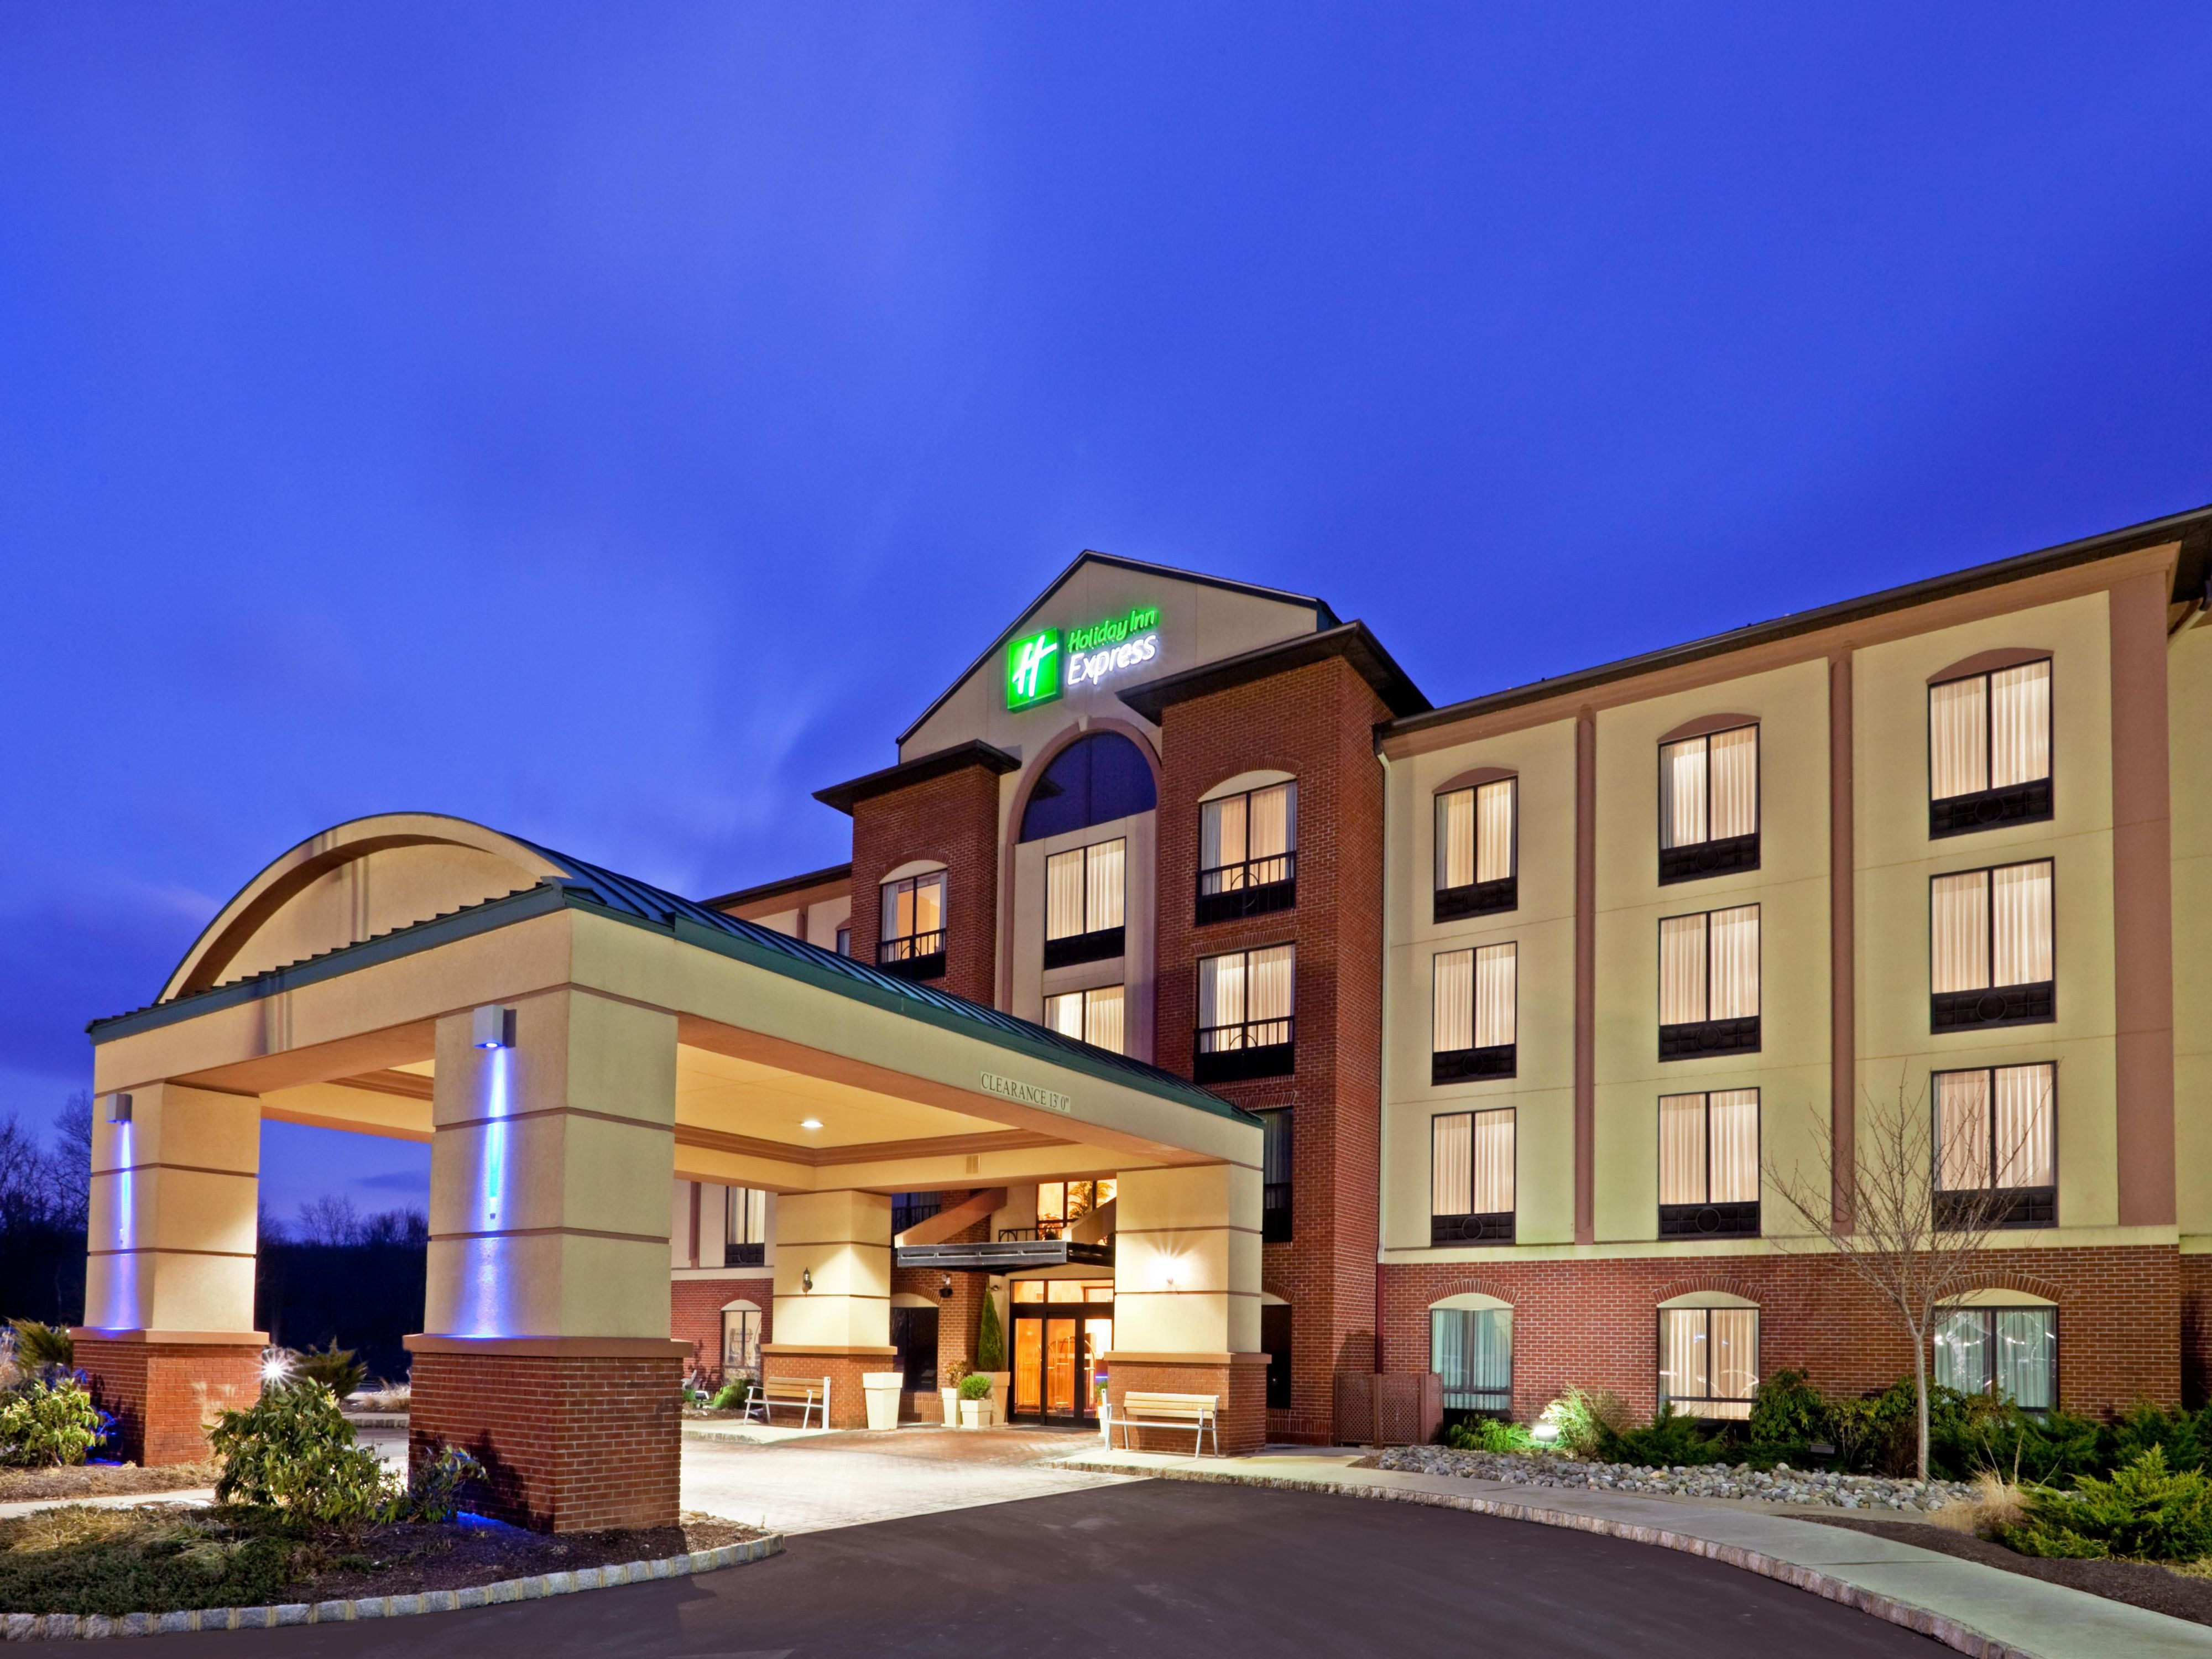 Holiday Inn Express Branchburg at dusk..